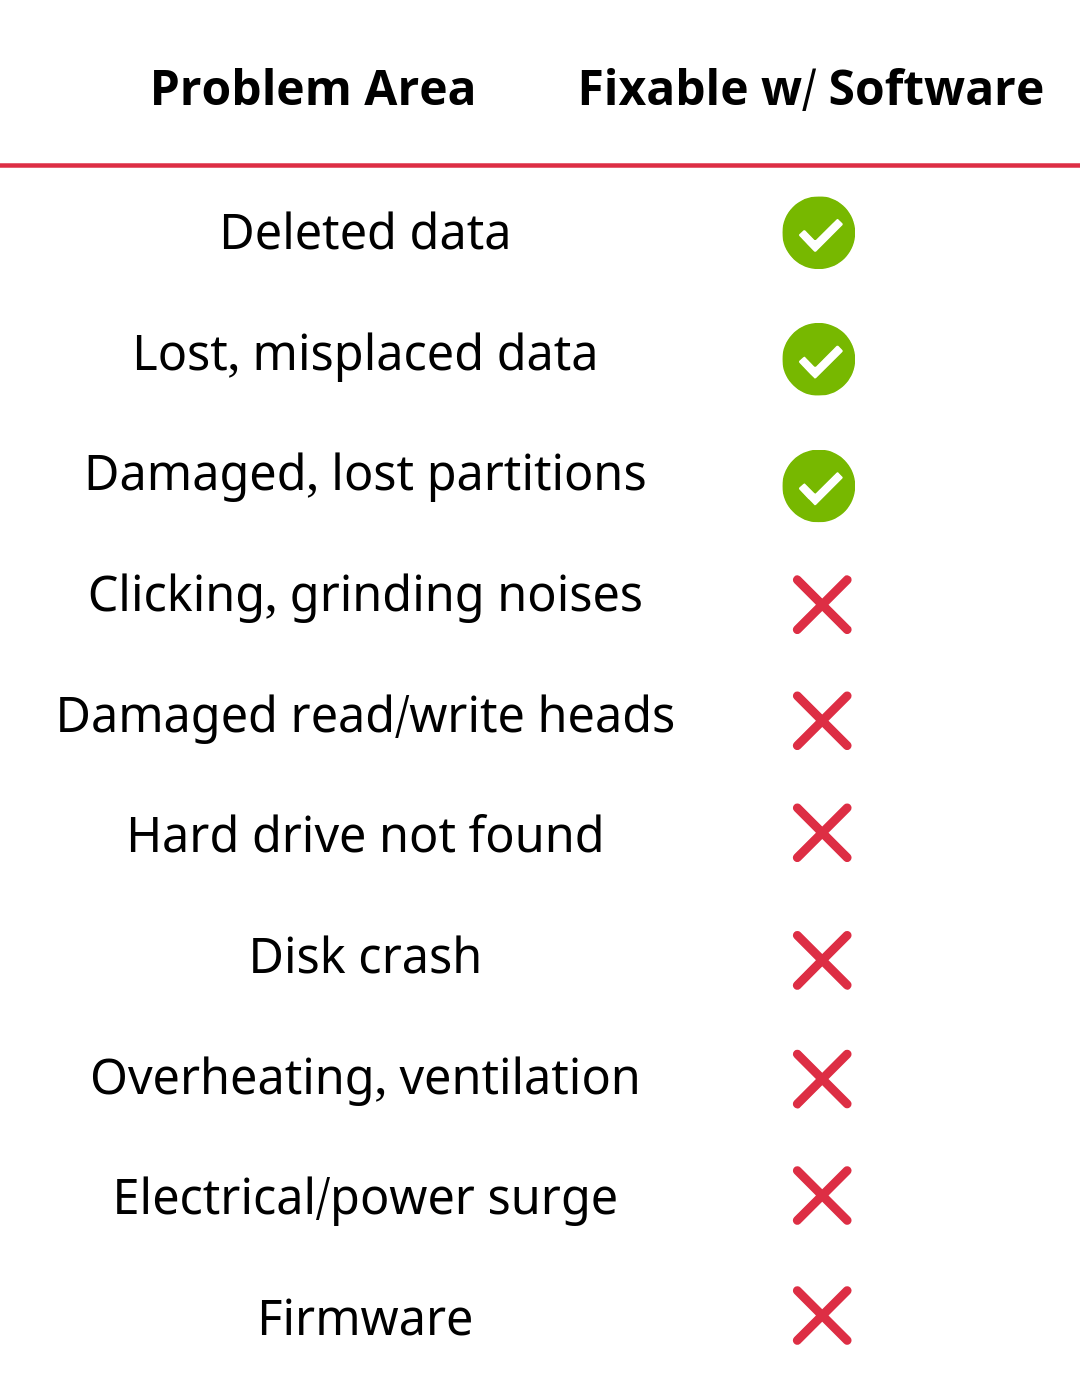 Common problems with hard drives, recovery software